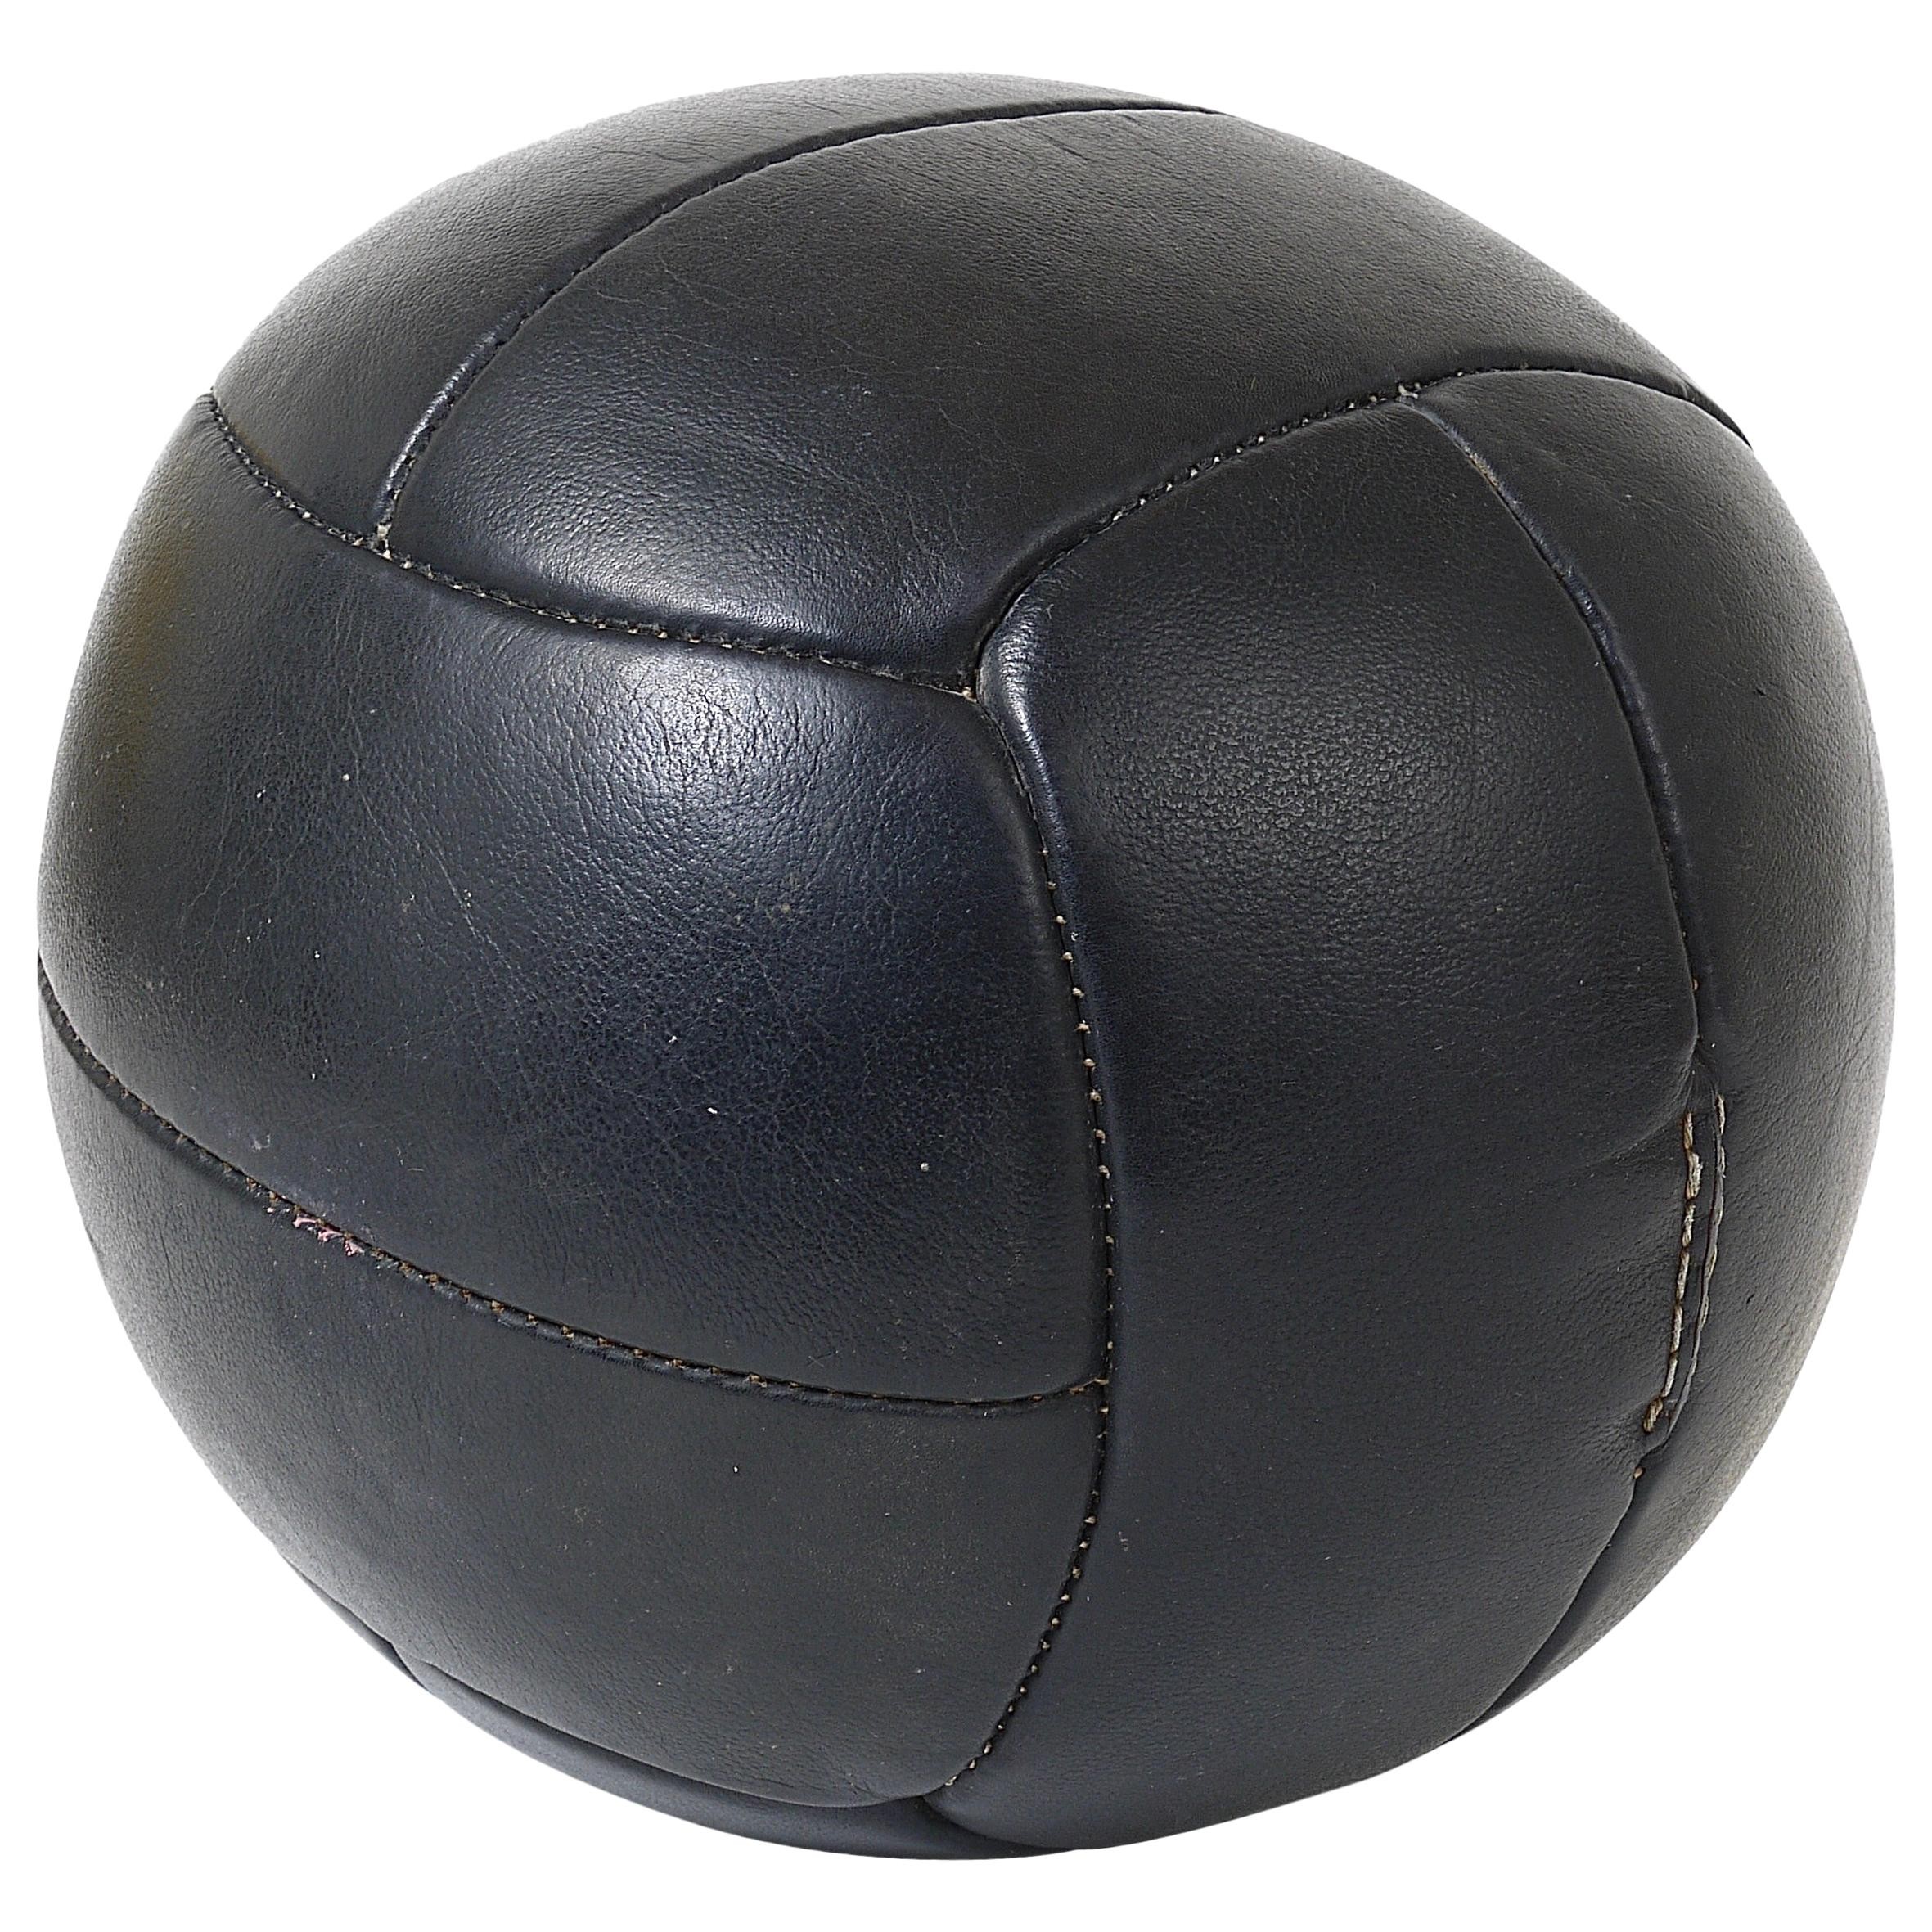 Vintage 1930s Black Leather Medicine Ball from a Gym, Czech Republic, 1930s